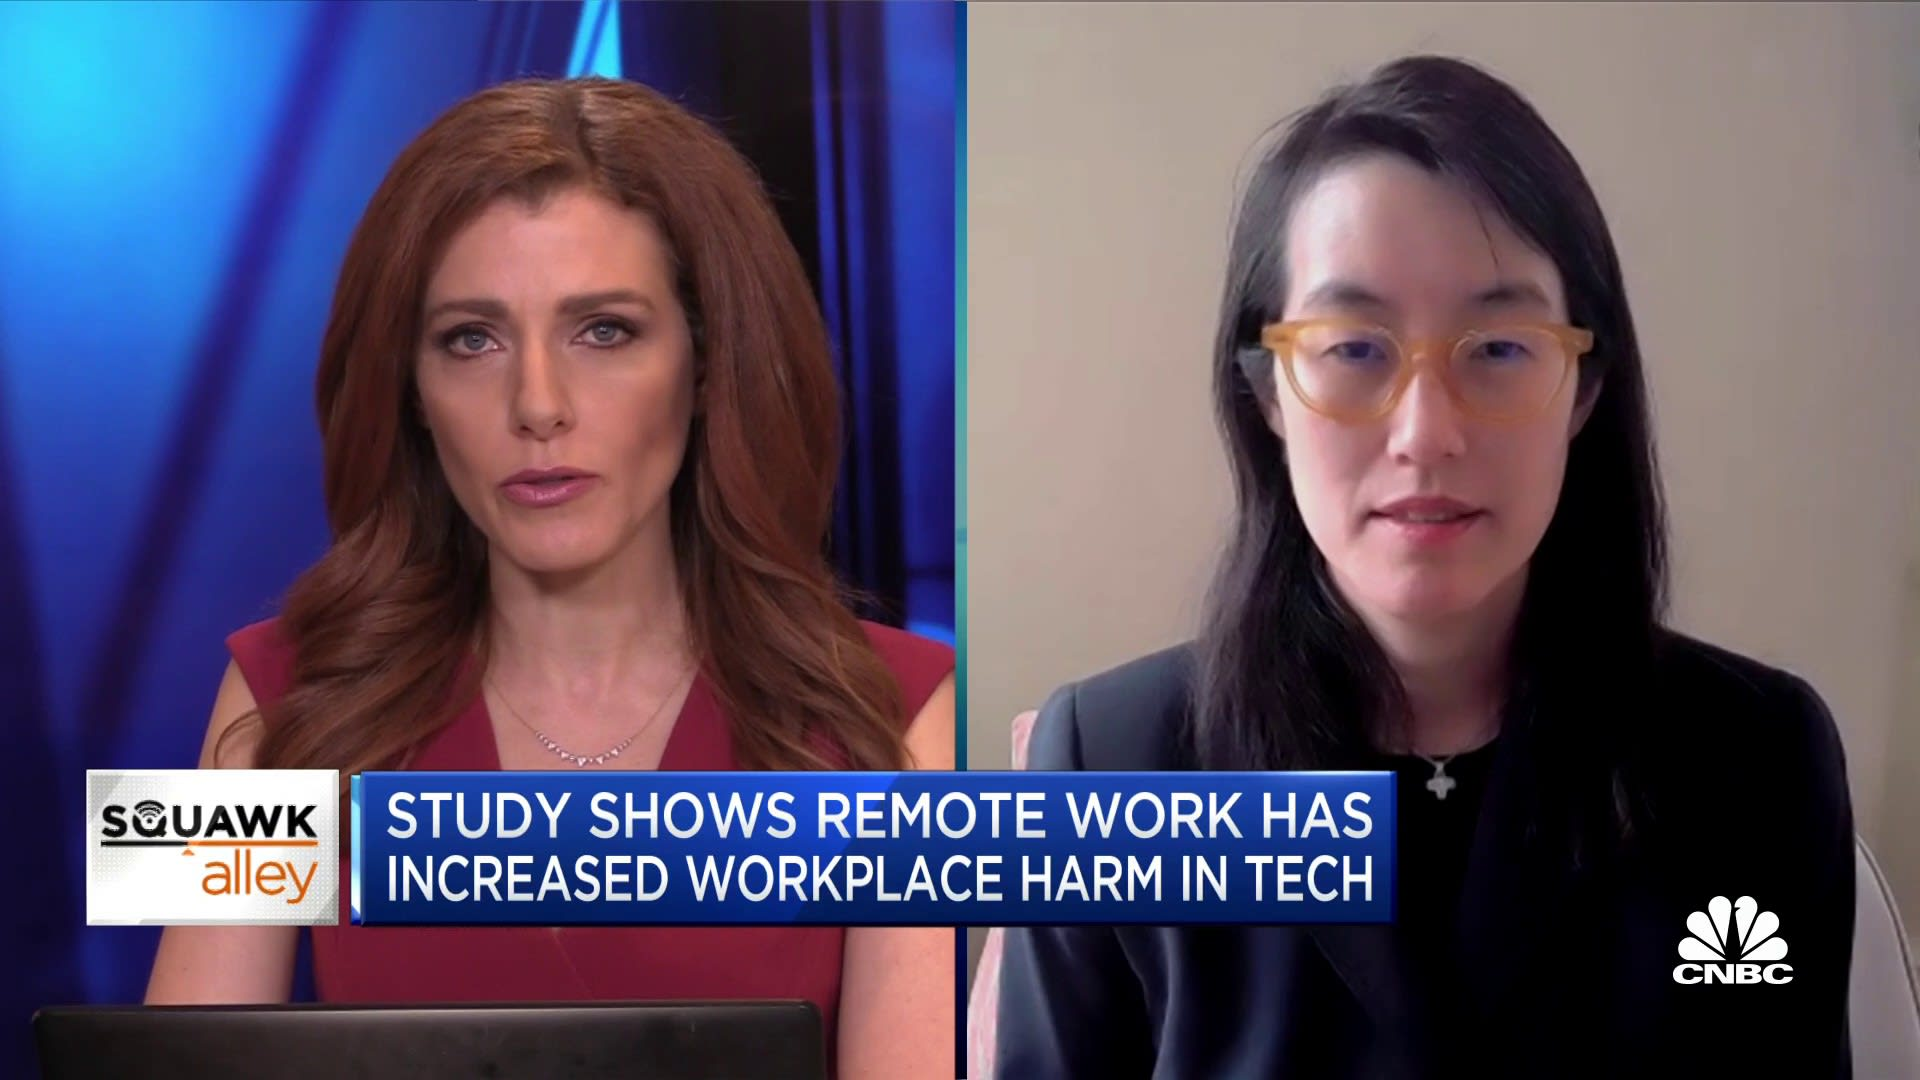 Former Reddit CEO Ellen Pao on remote work and harassment